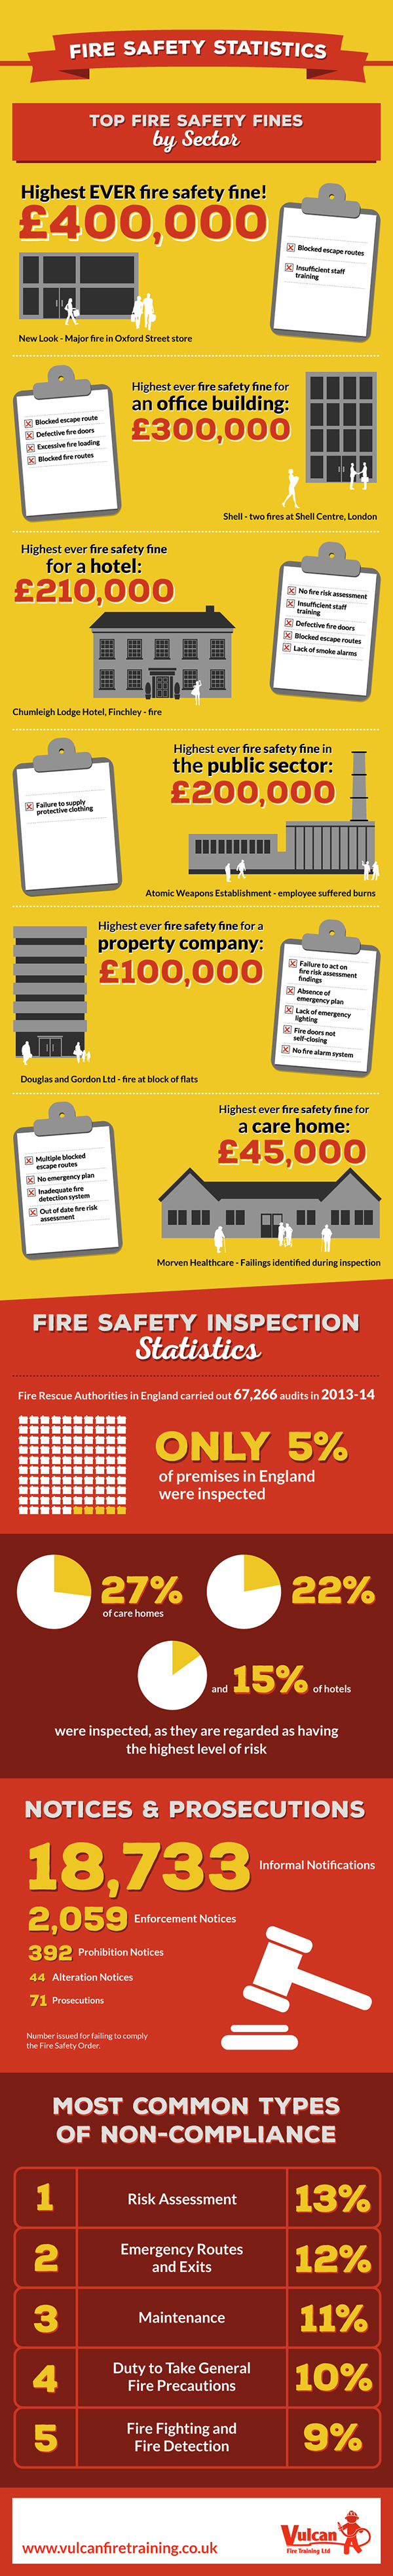 Fire Safety Statistics from Vulcan Fire Training